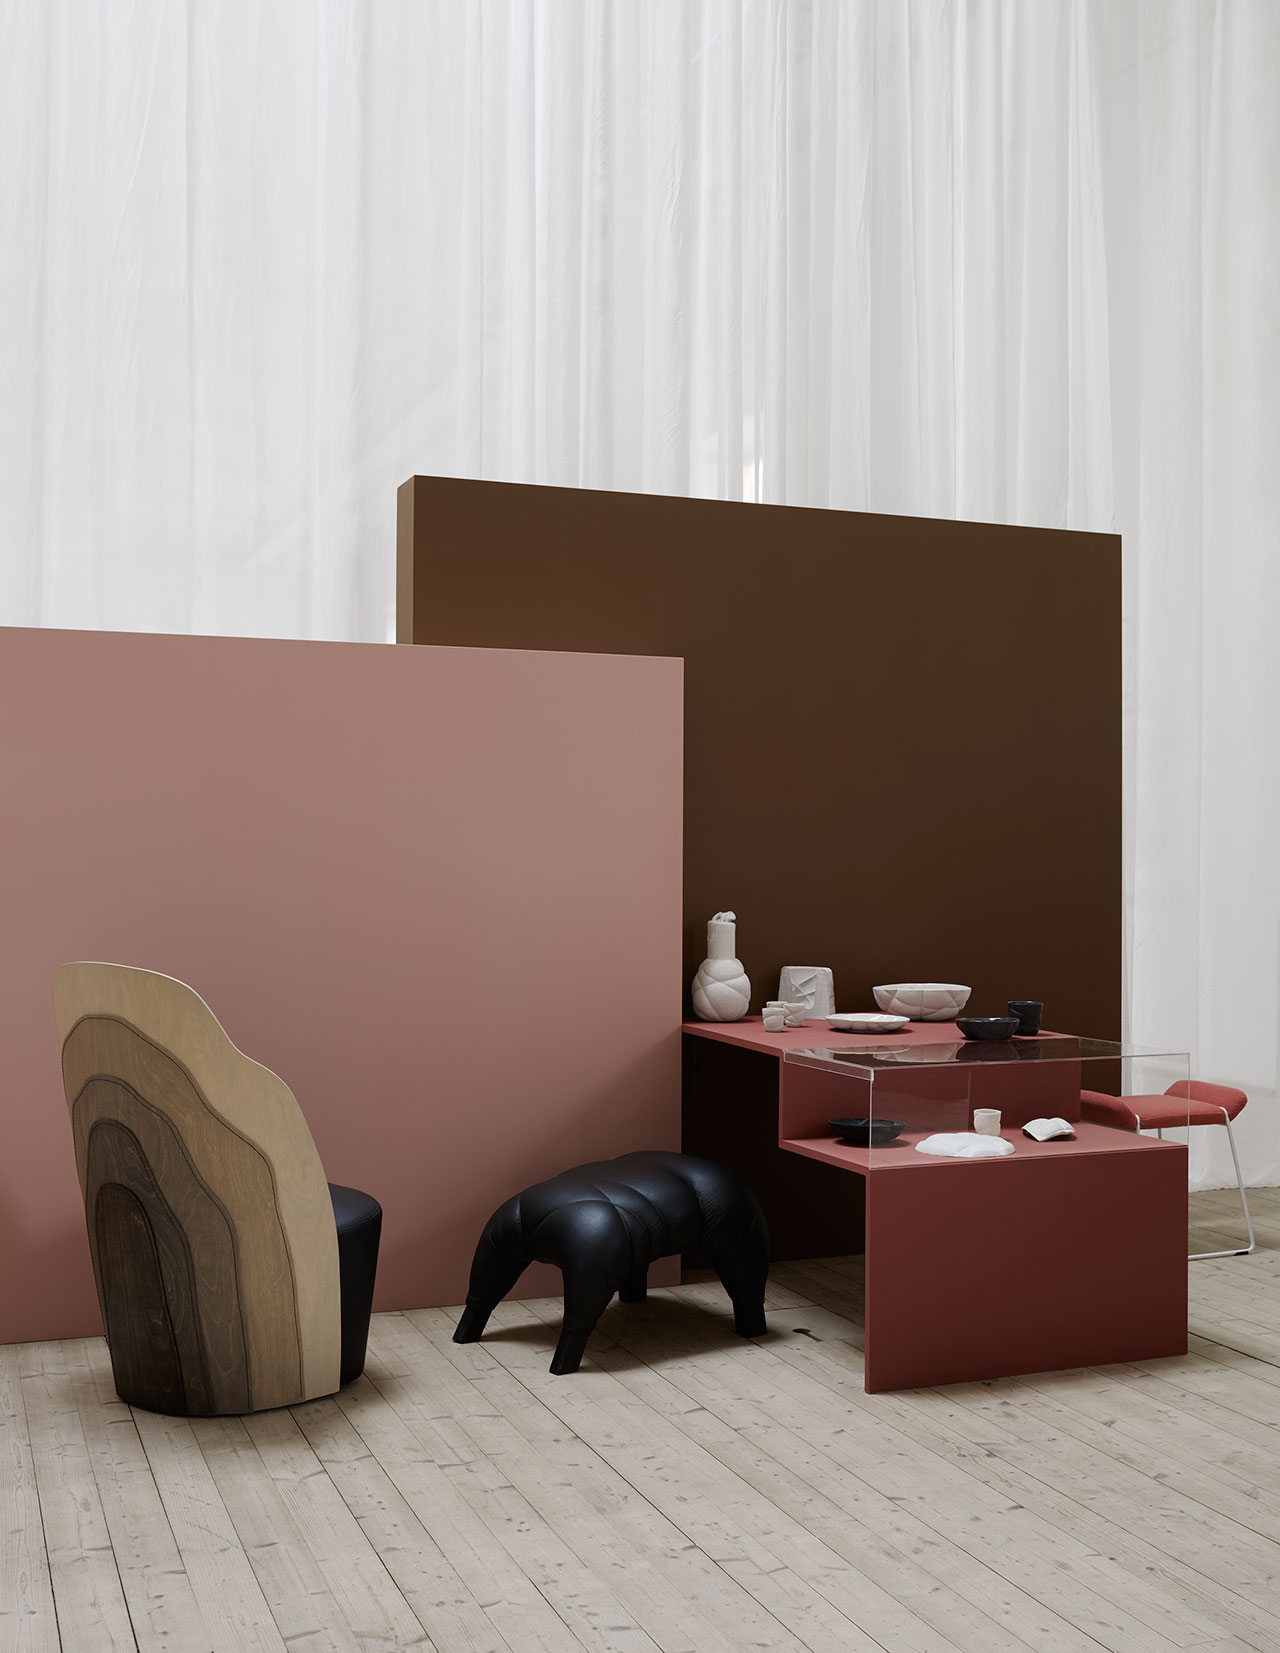 From left, armchair Julius, design Färg & Blanche for Gärsnäs. Video from production at Gärsnäs. Armchair Couture, design Färg & Blanche for BD Barcelona. Stool Succession, Färg & Blanche. Ceramic Succession Ceramic for Petite Friture 2016. On the podium, form for the production of the carafe in felt, the first mold in plaster. Under the glass case, material for the formation of Succession Ceramics. Stool Frankie, design Färg & Blanche for Johanson Design. Photo by Kristofer Johnsson.